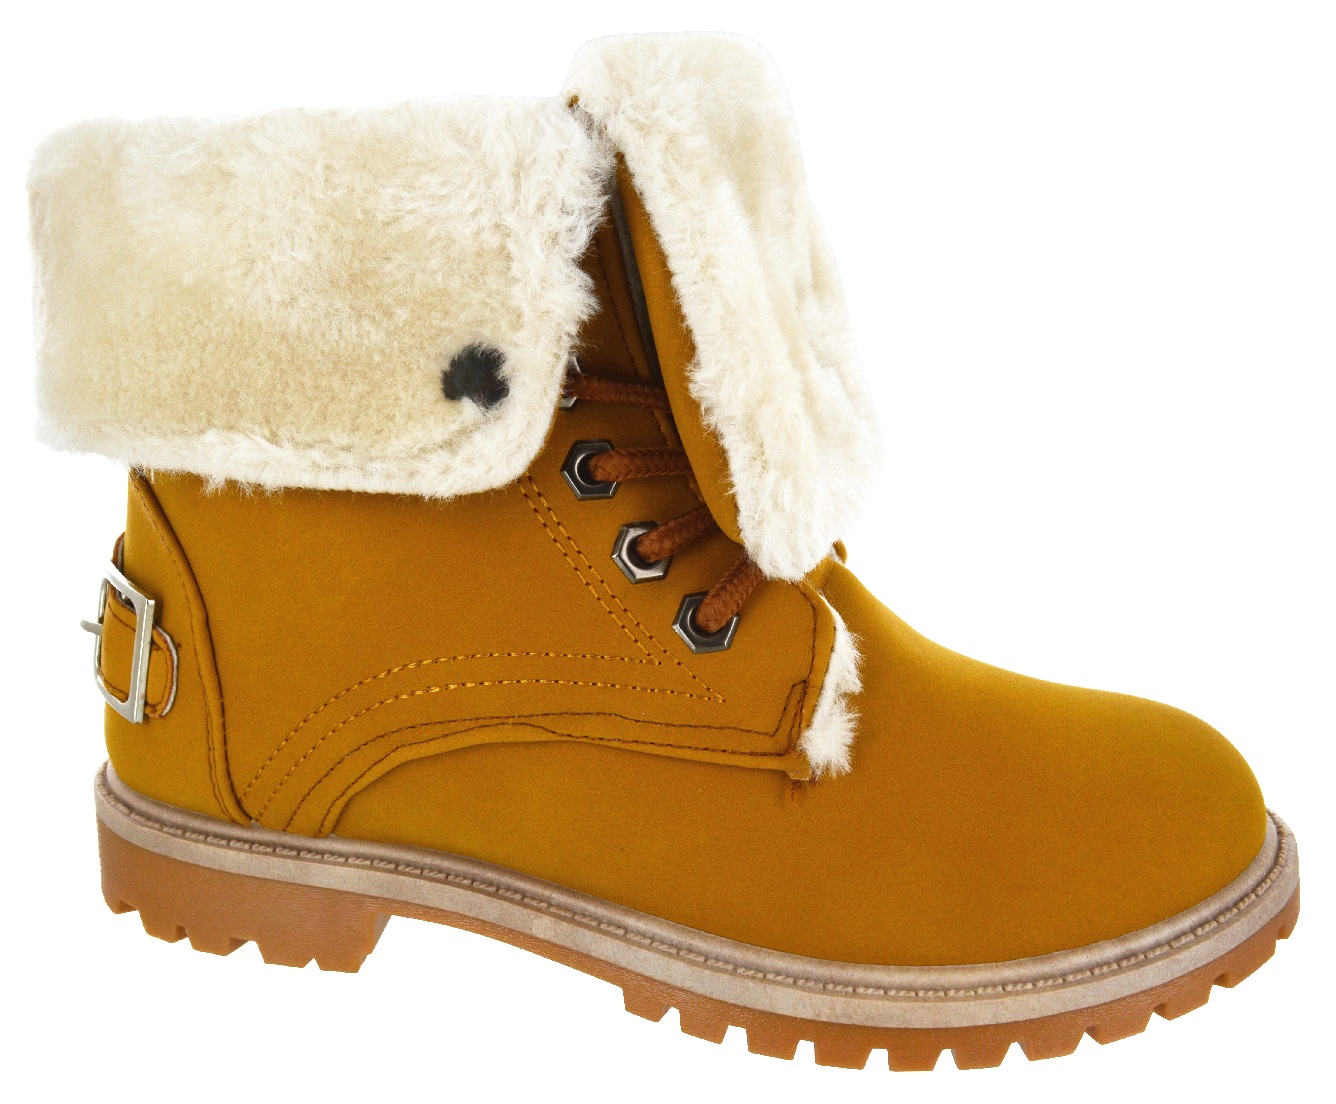 WOMENS-LADIES-FLAT-FUR-LINED-GRIP-SOLE-WINTER-ARMY-COMBAT-ANKLE-BOOTS-SHOES-SIZE